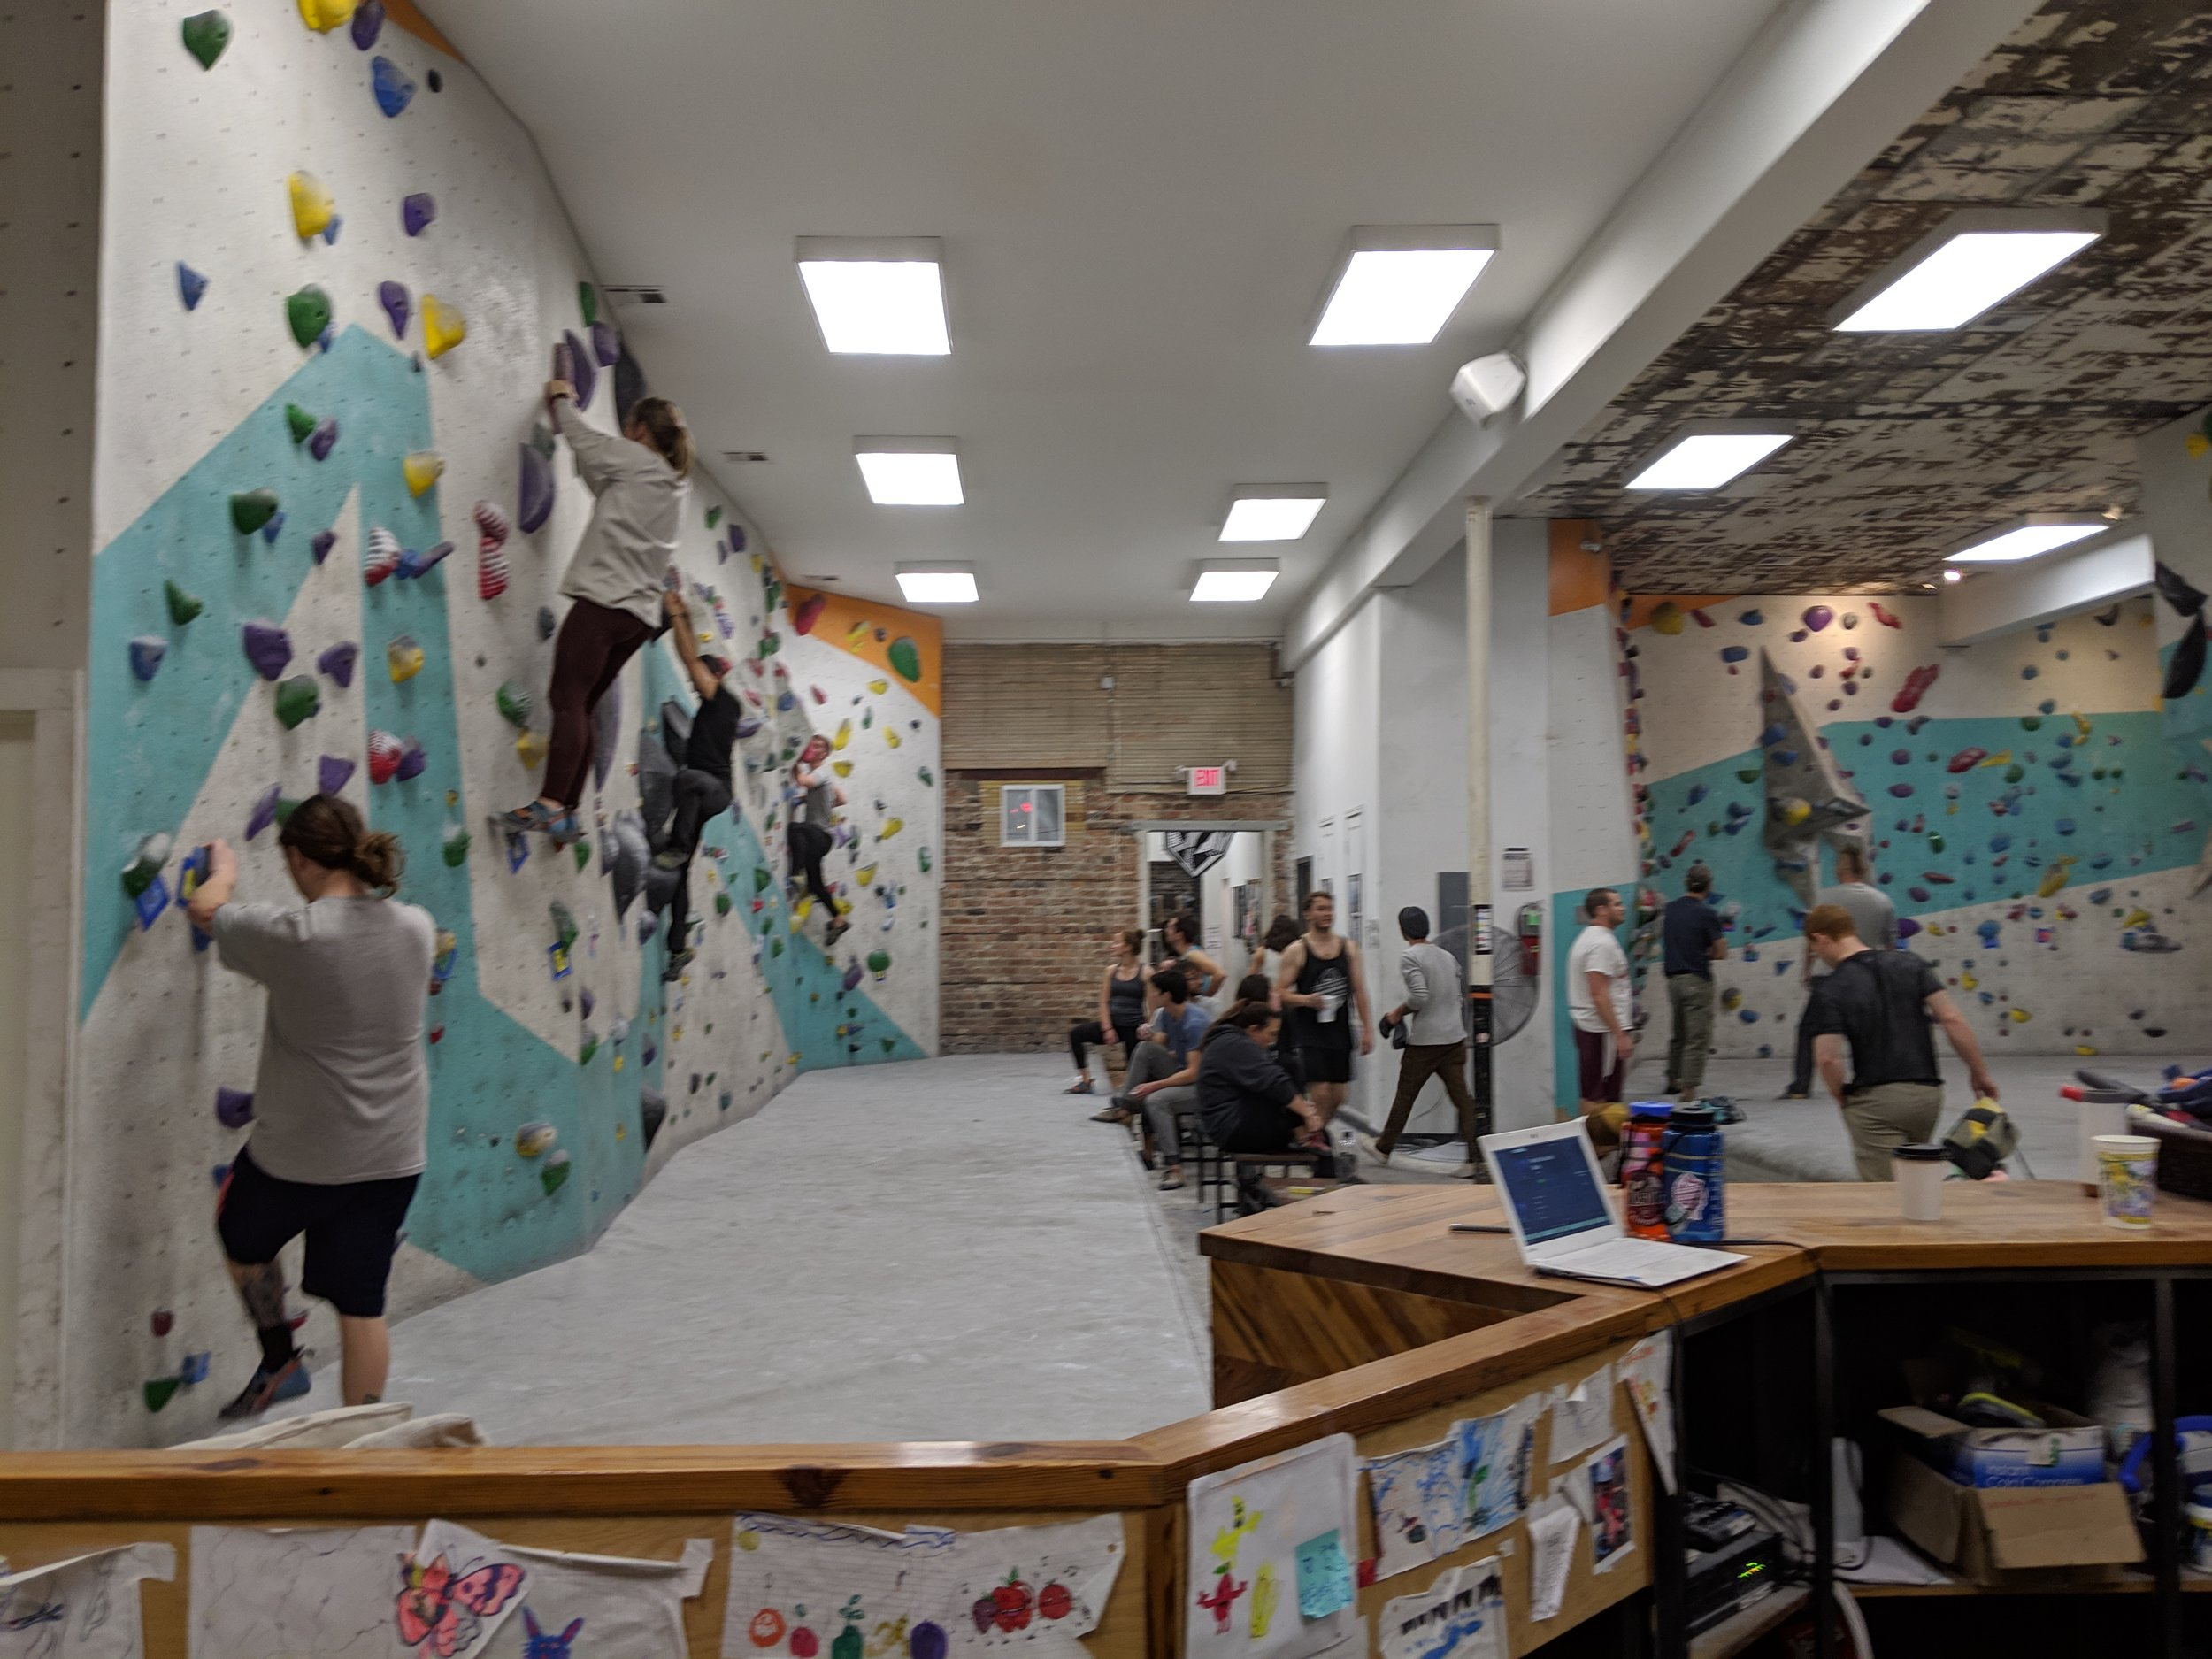 Fun to imagine what the previous tenant (which feels like it was a general store of some sort) looked like before these climbing walls were put in.